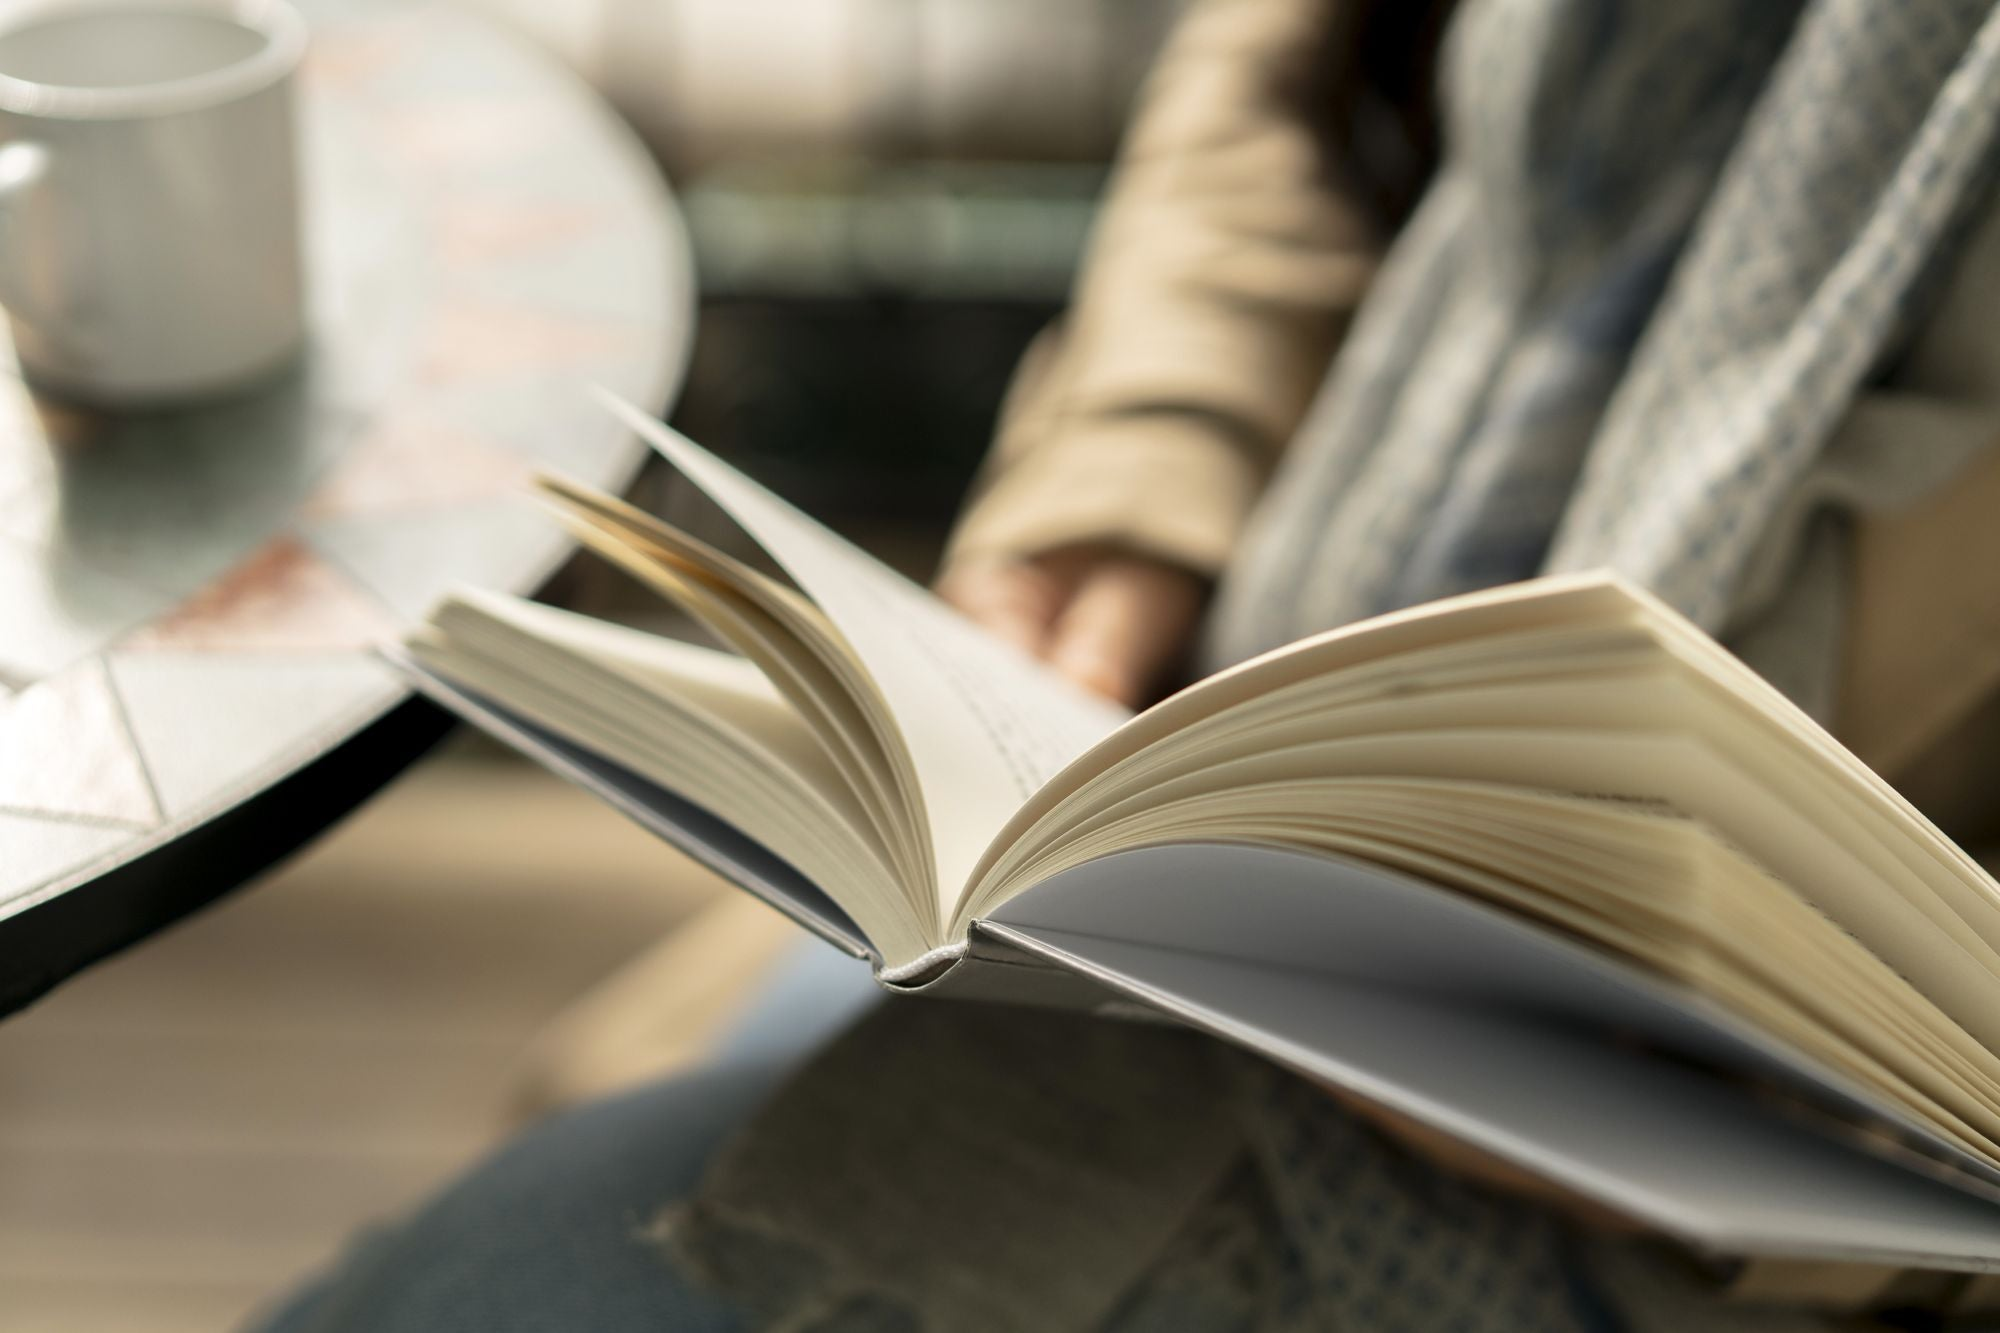 15 of the Best Time Management and Productivity Books of All Time